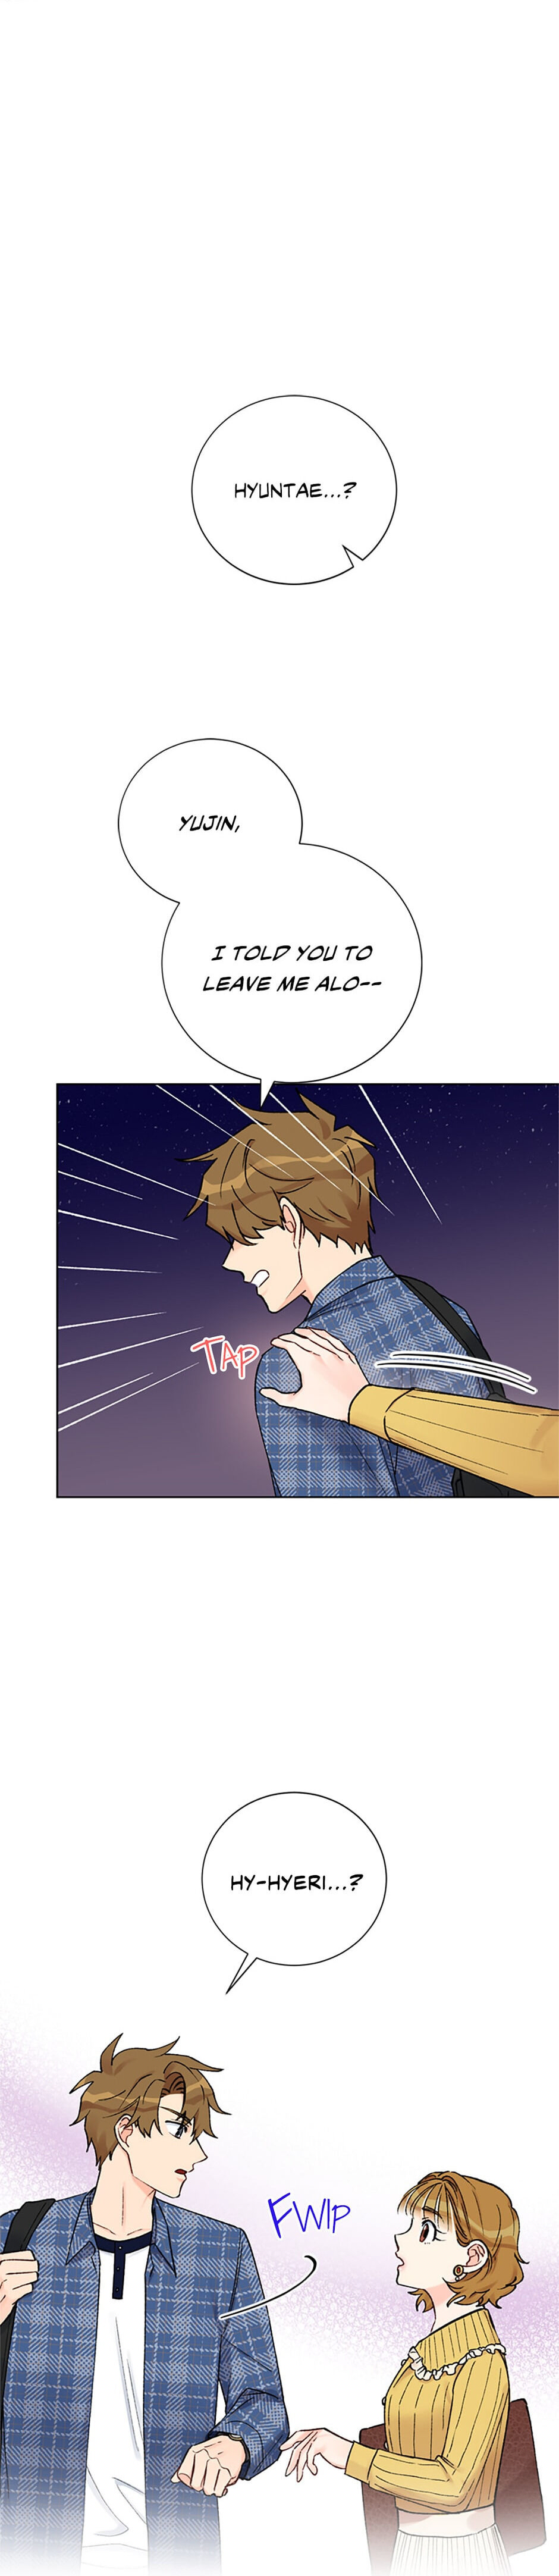 Acquainted: Encounter Spin-Off - chapter 21 - #3